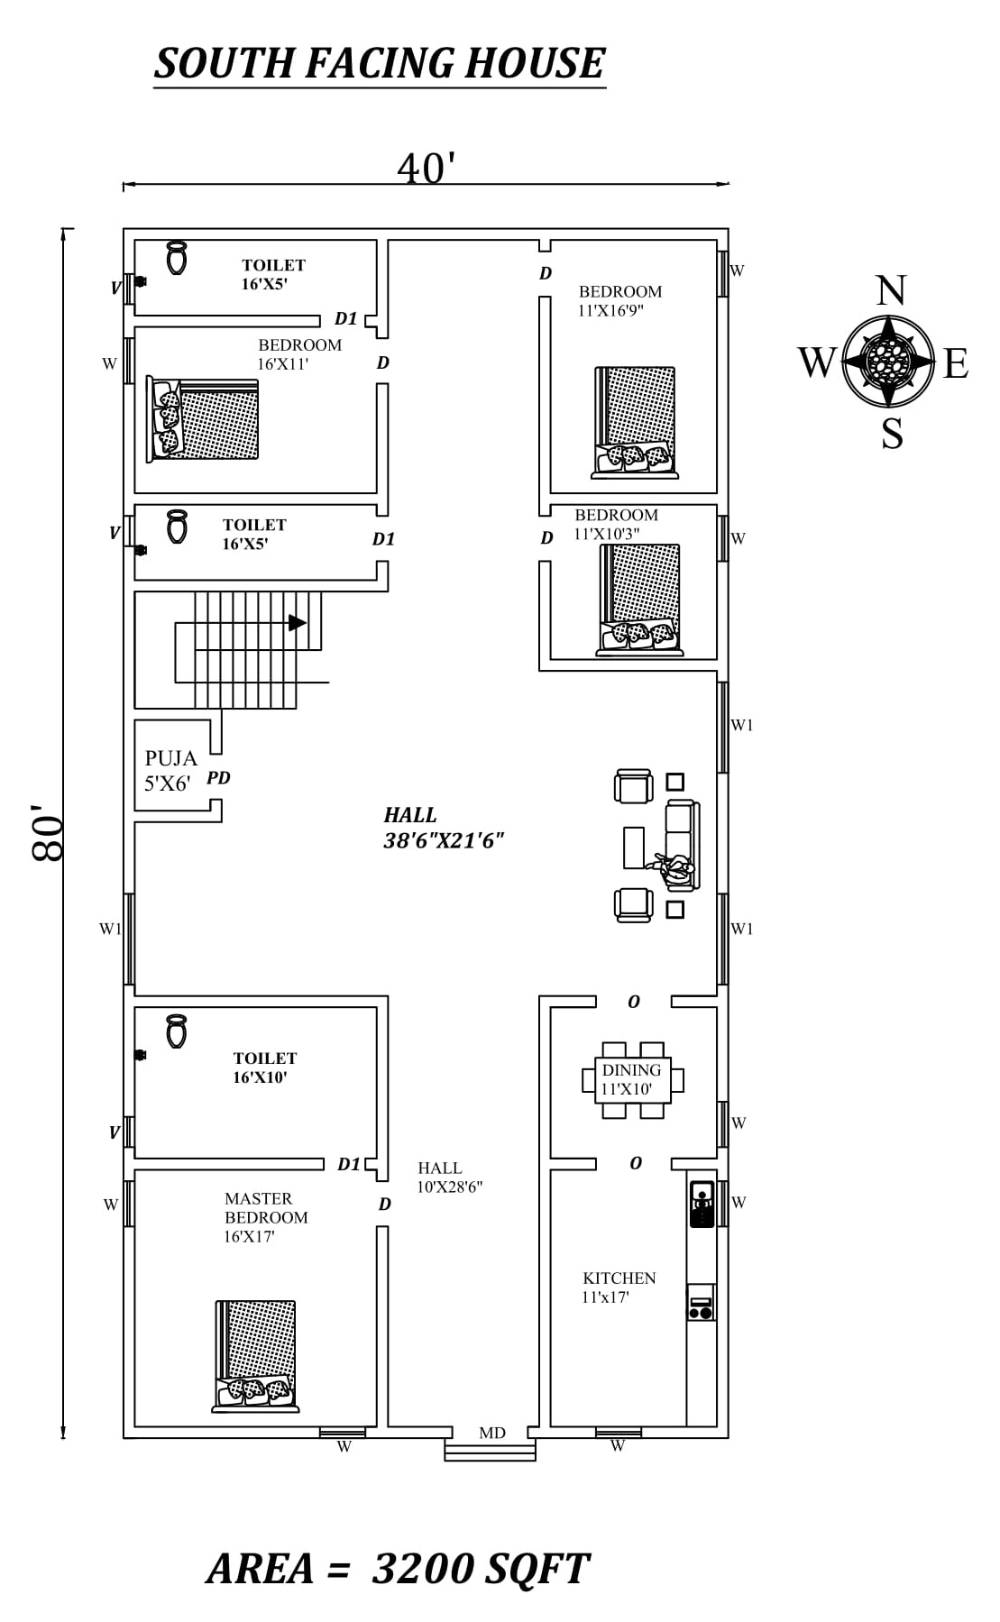 40 X80 4bhk South Facing House Plan As Per Vastu Shastra Autocad Dwg And Pdf File Details South Facing House House Construction Plan House Plans